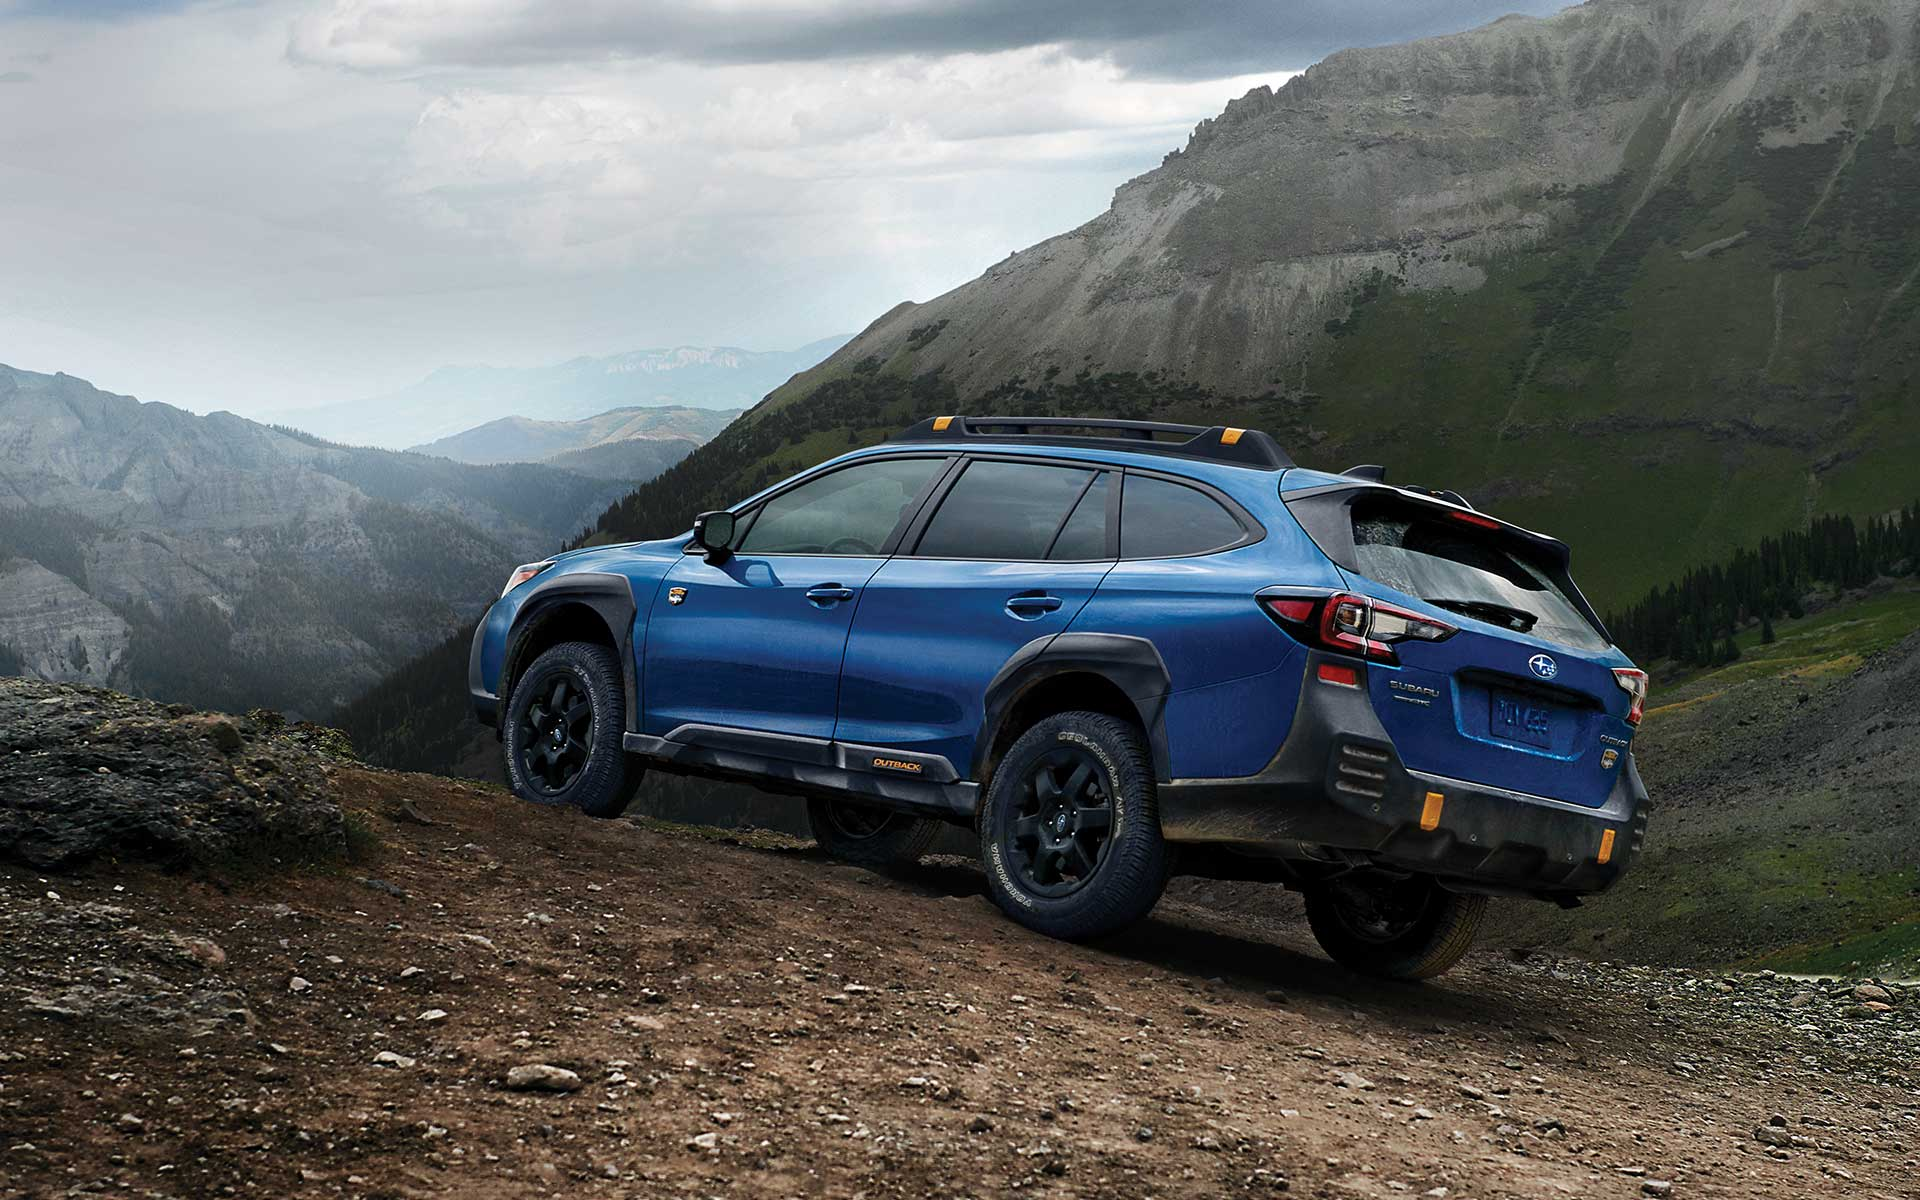 2022 Subaru Outback Wilderness driving up a rocky incline.